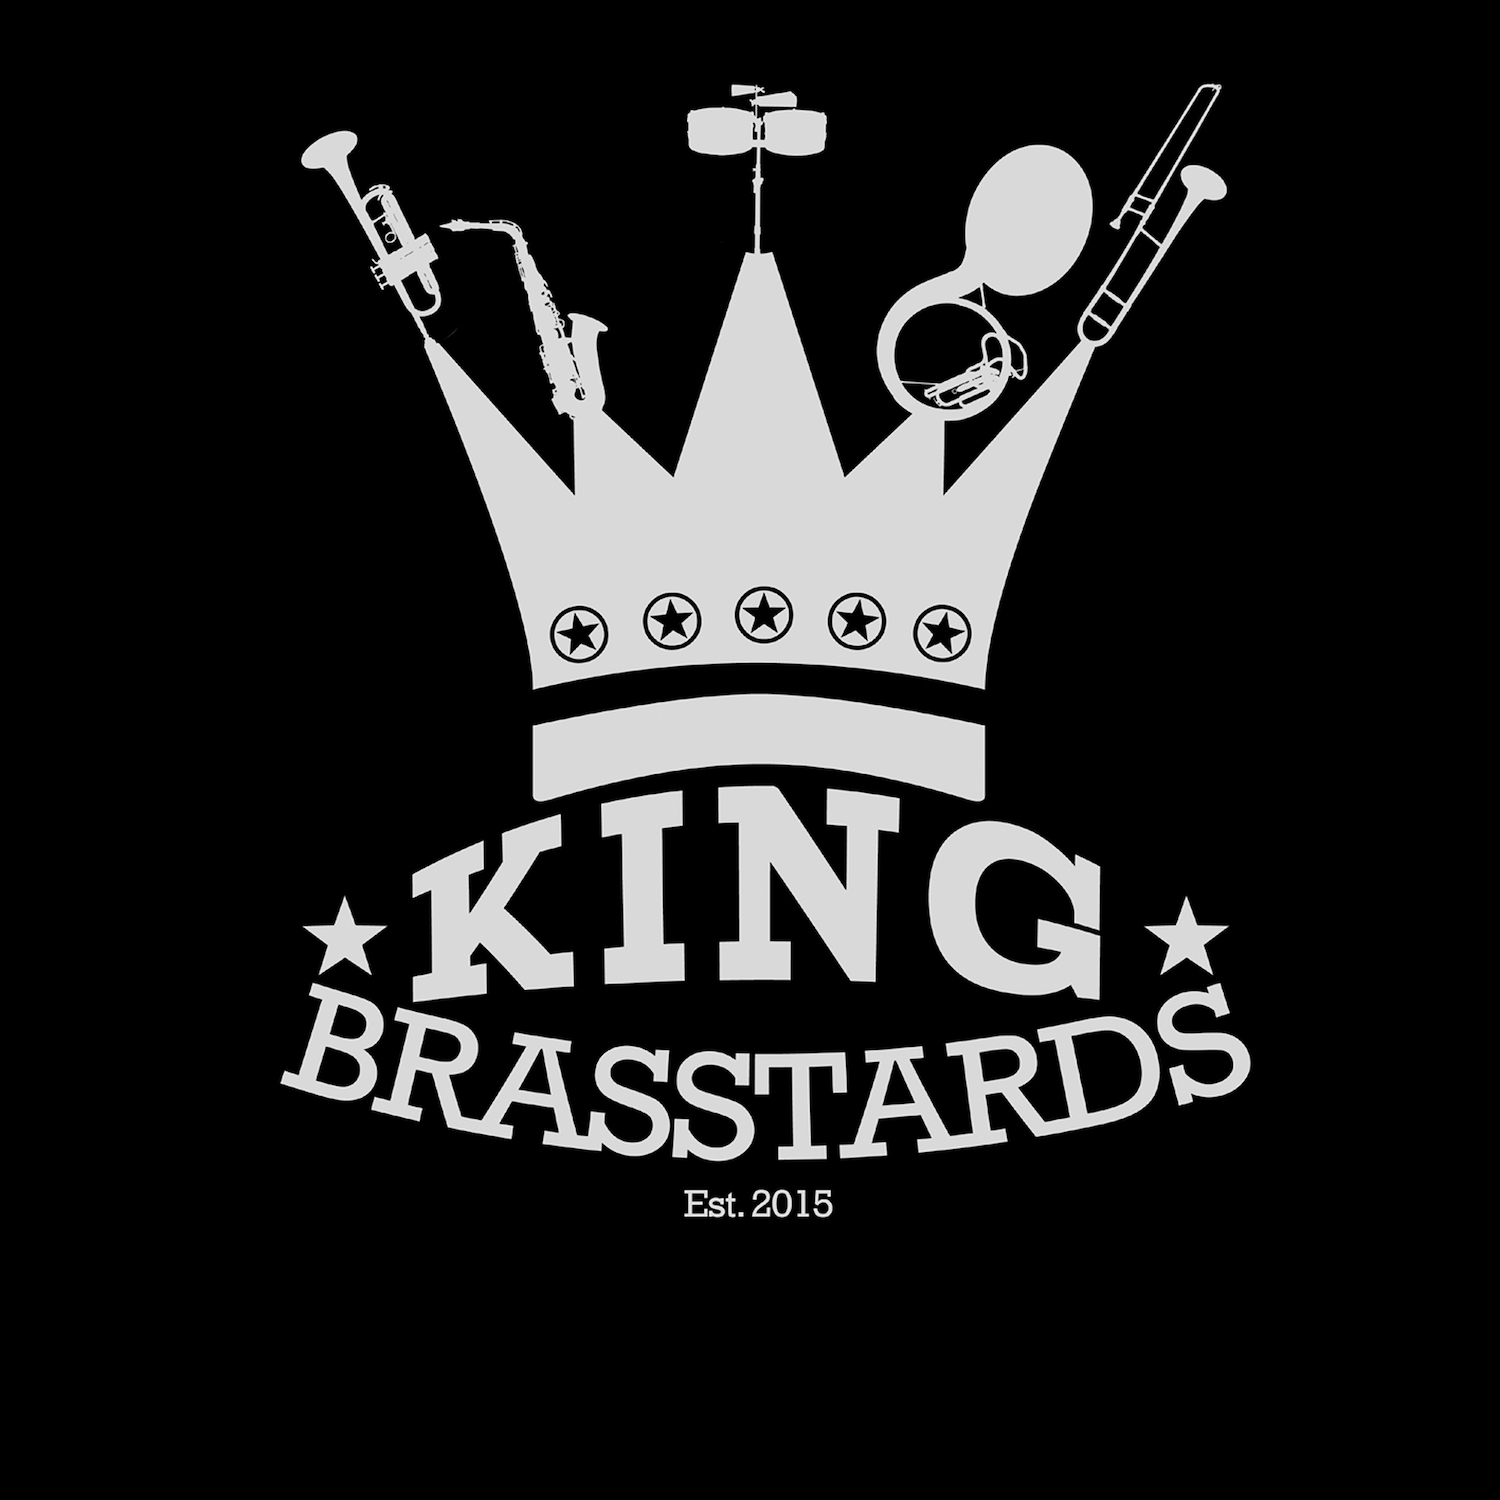 king brasstards band